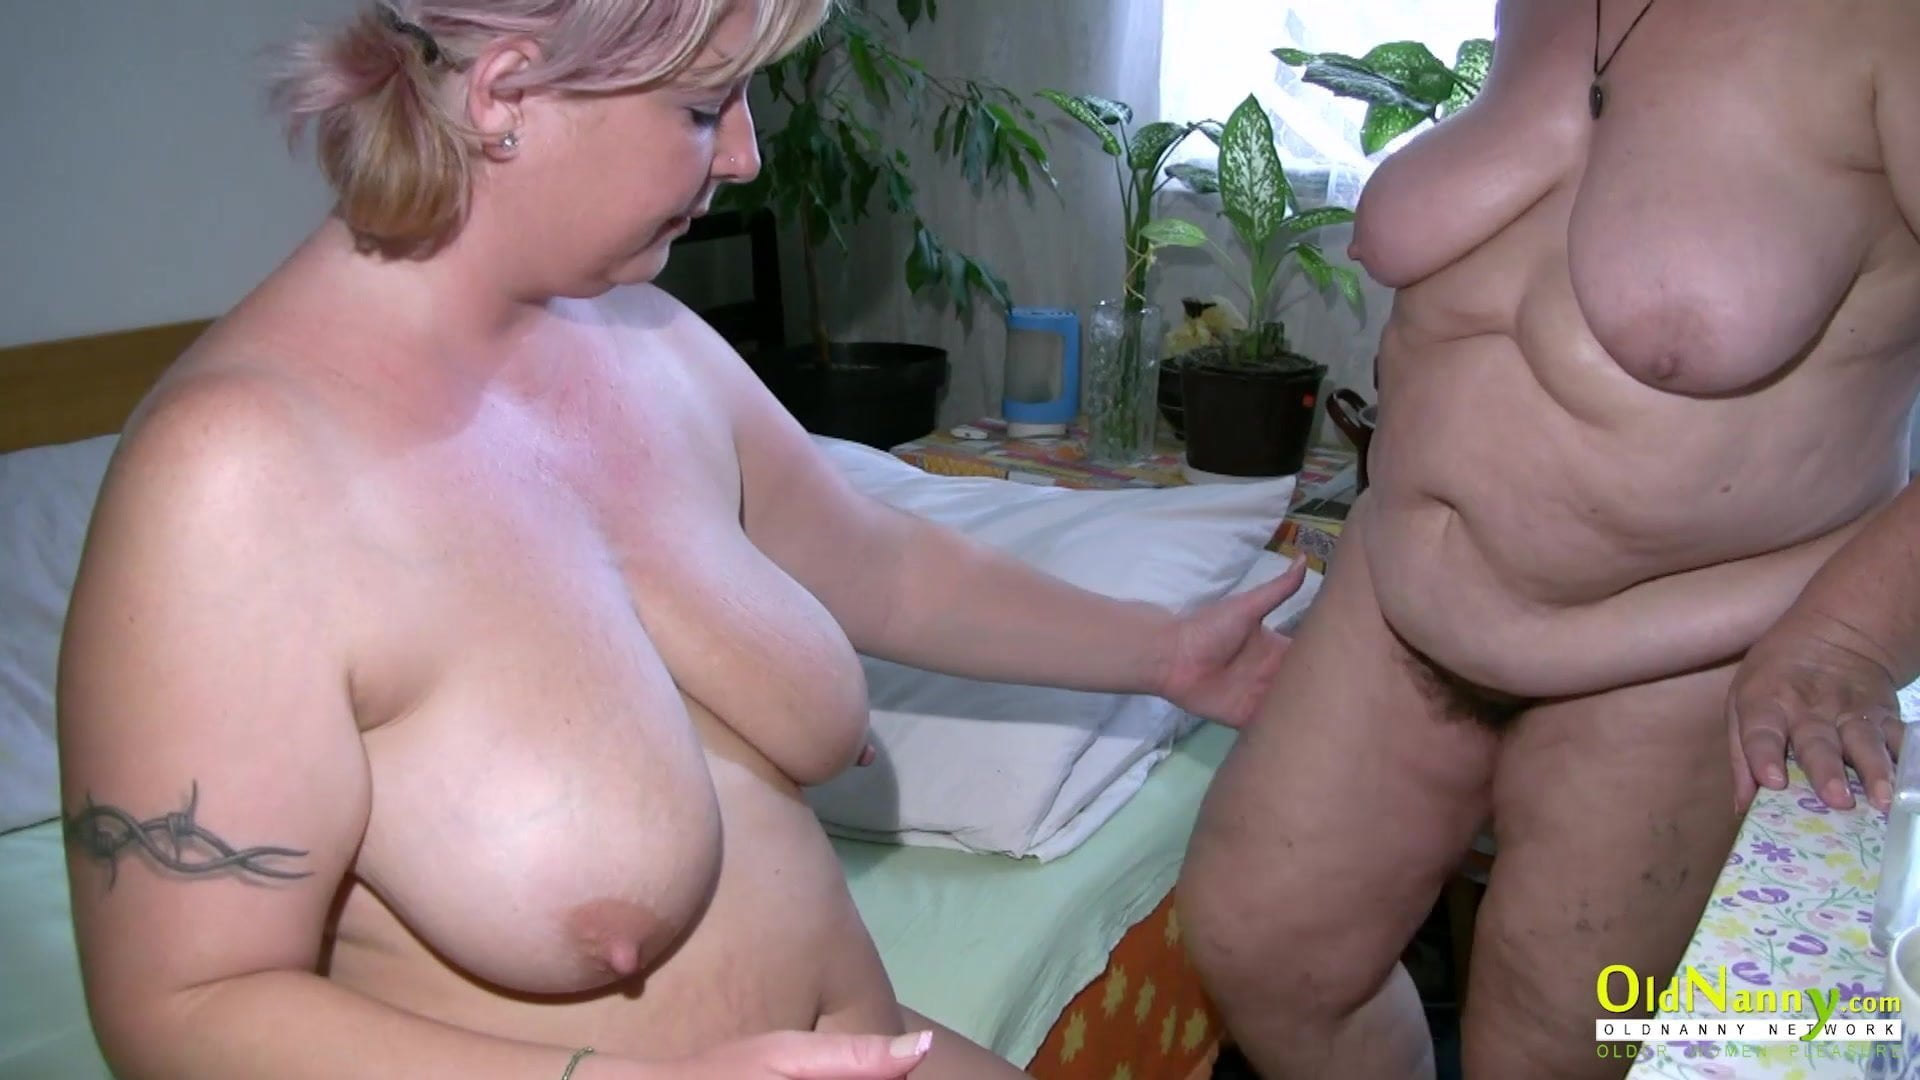 XXX Video Pictures of two naked women